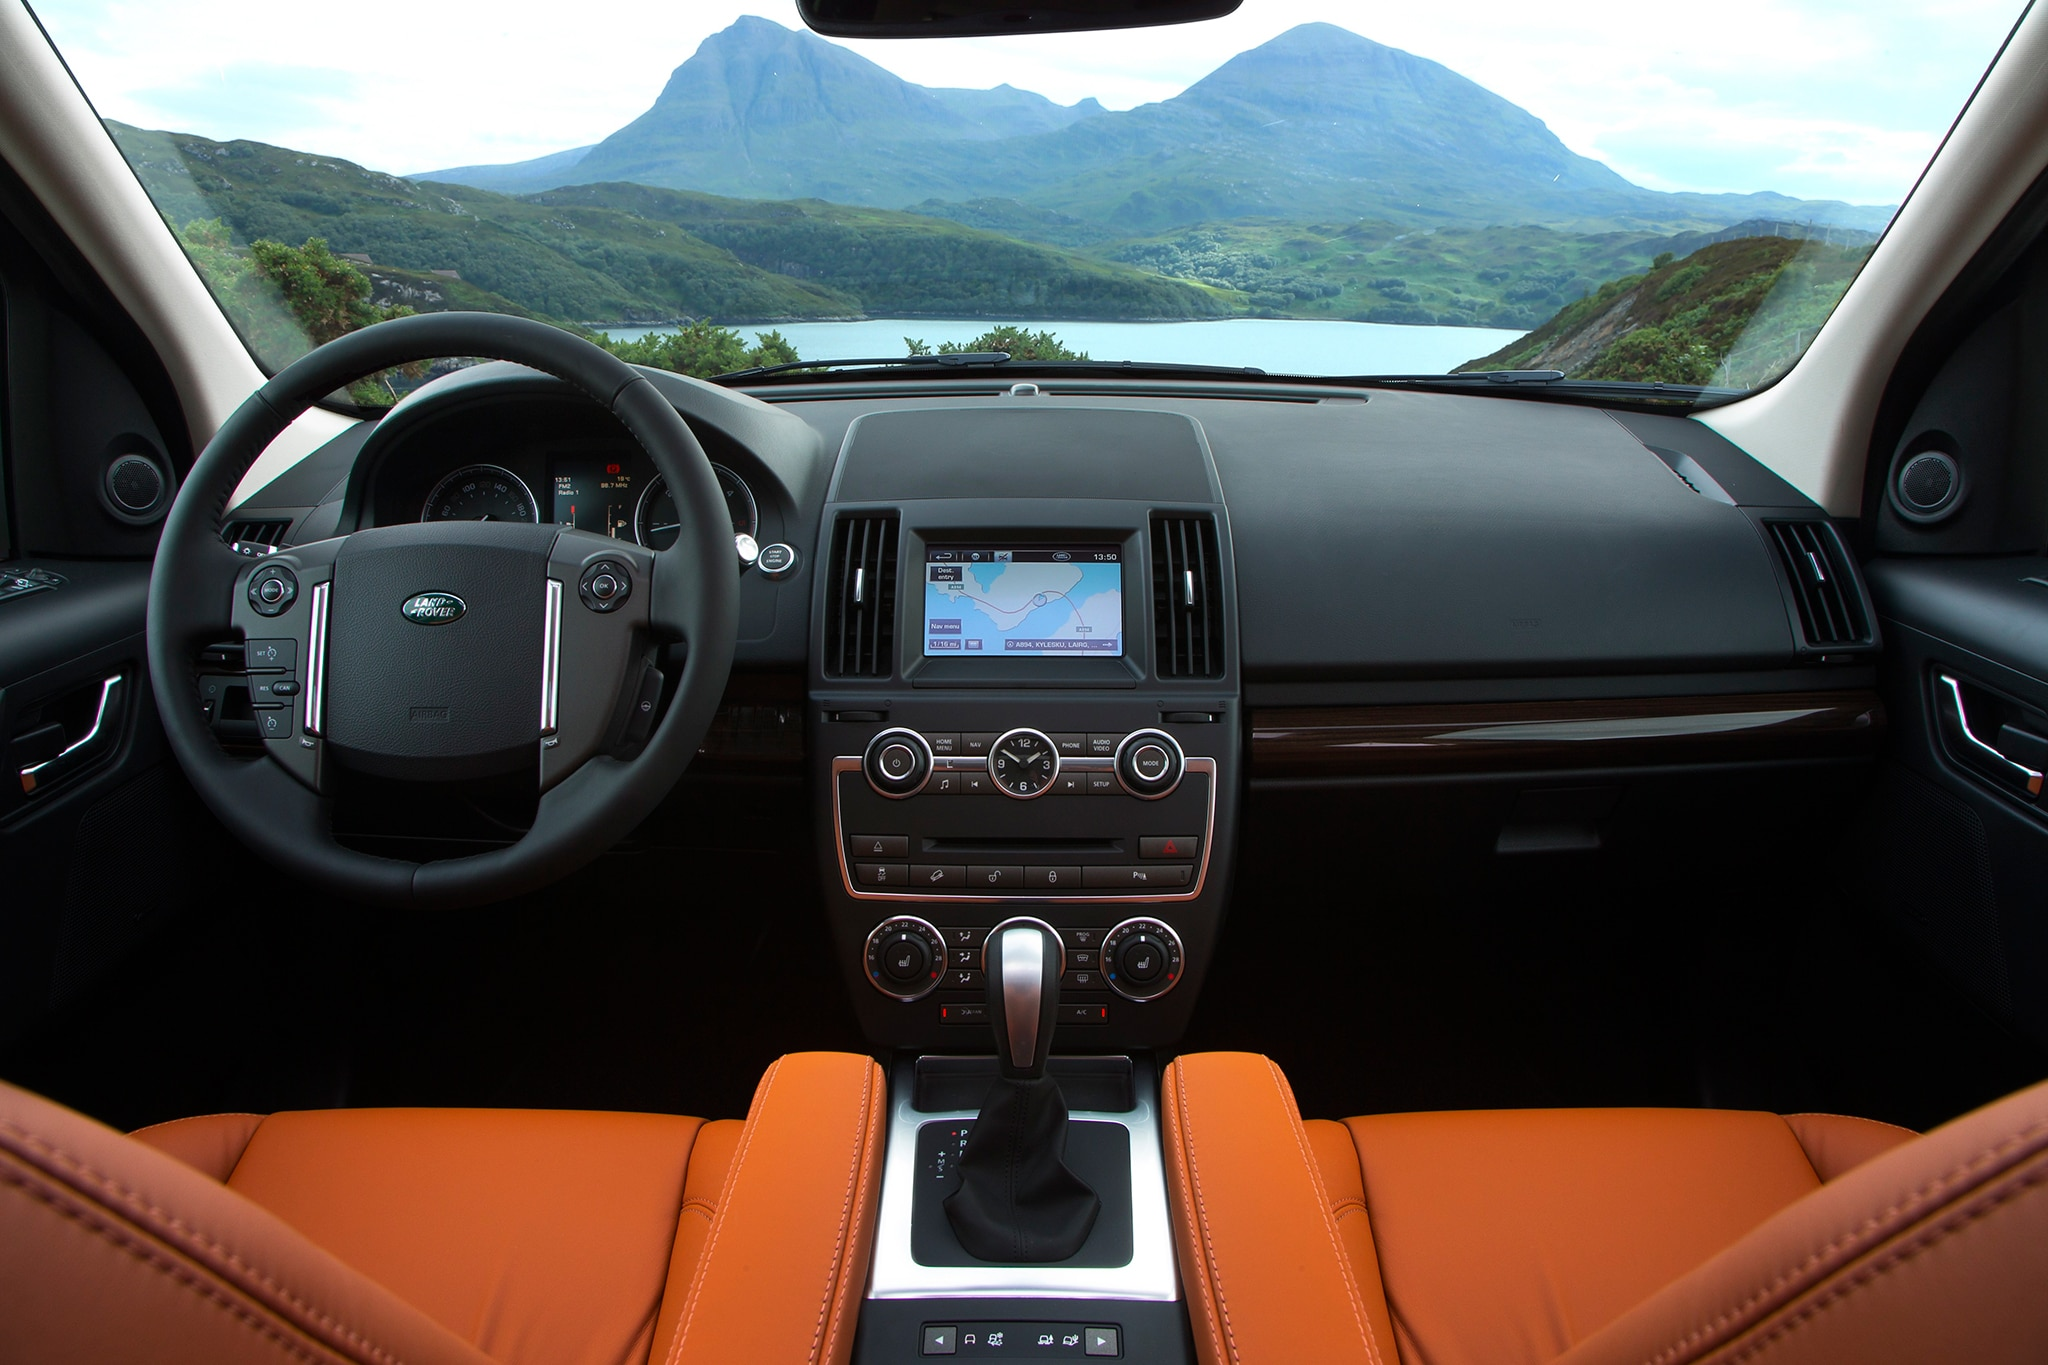 http://st.automobilemag.com/uploads/sites/10/2015/09/2013-land-rover-LR2-front-interior-view.jpg